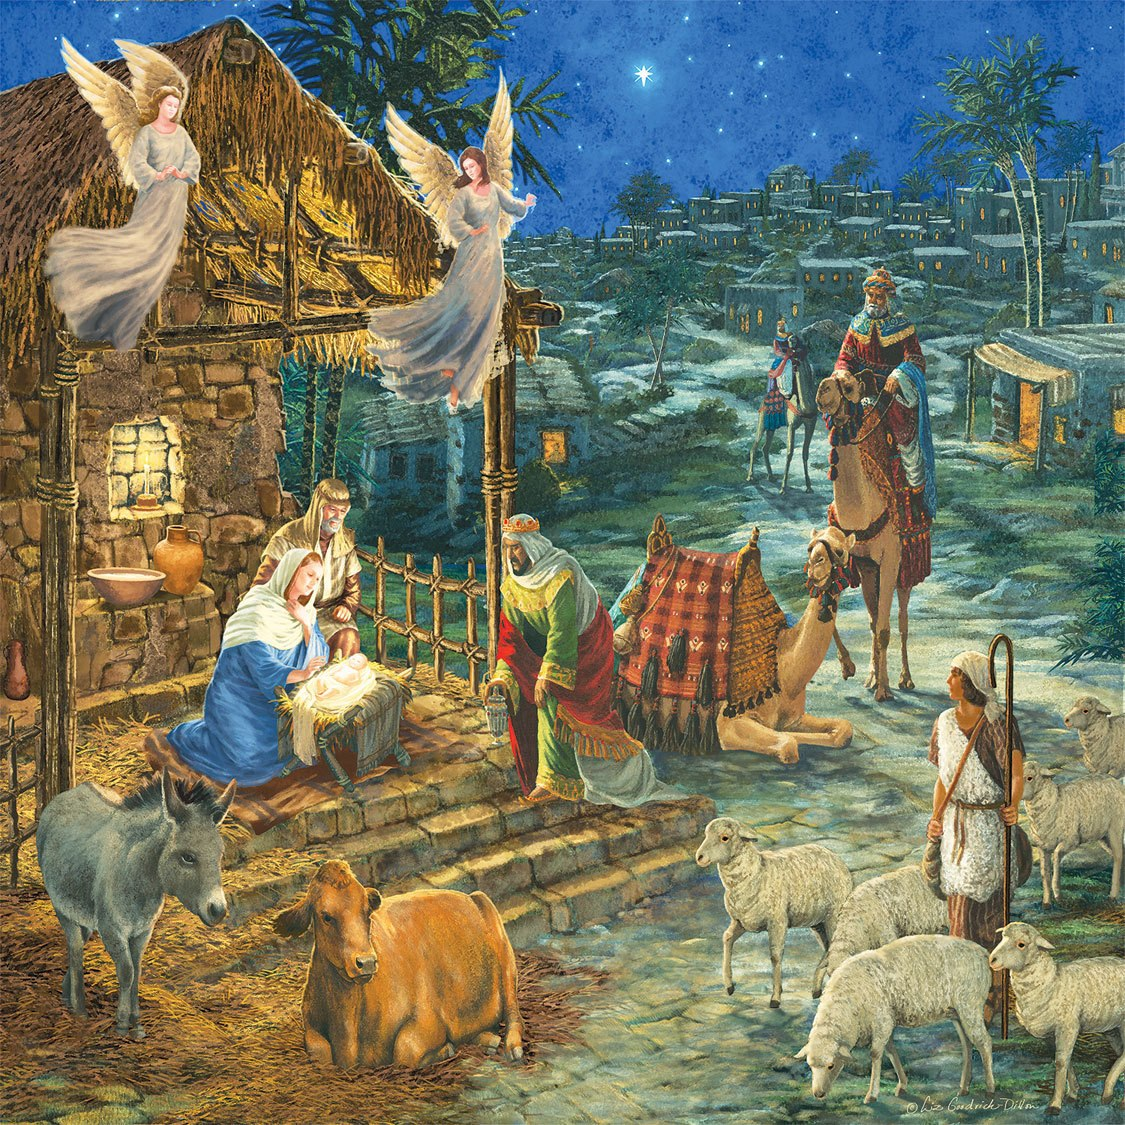 Visit to Bethlehem - 1000pc Jigsaw Puzzle by SunsOut